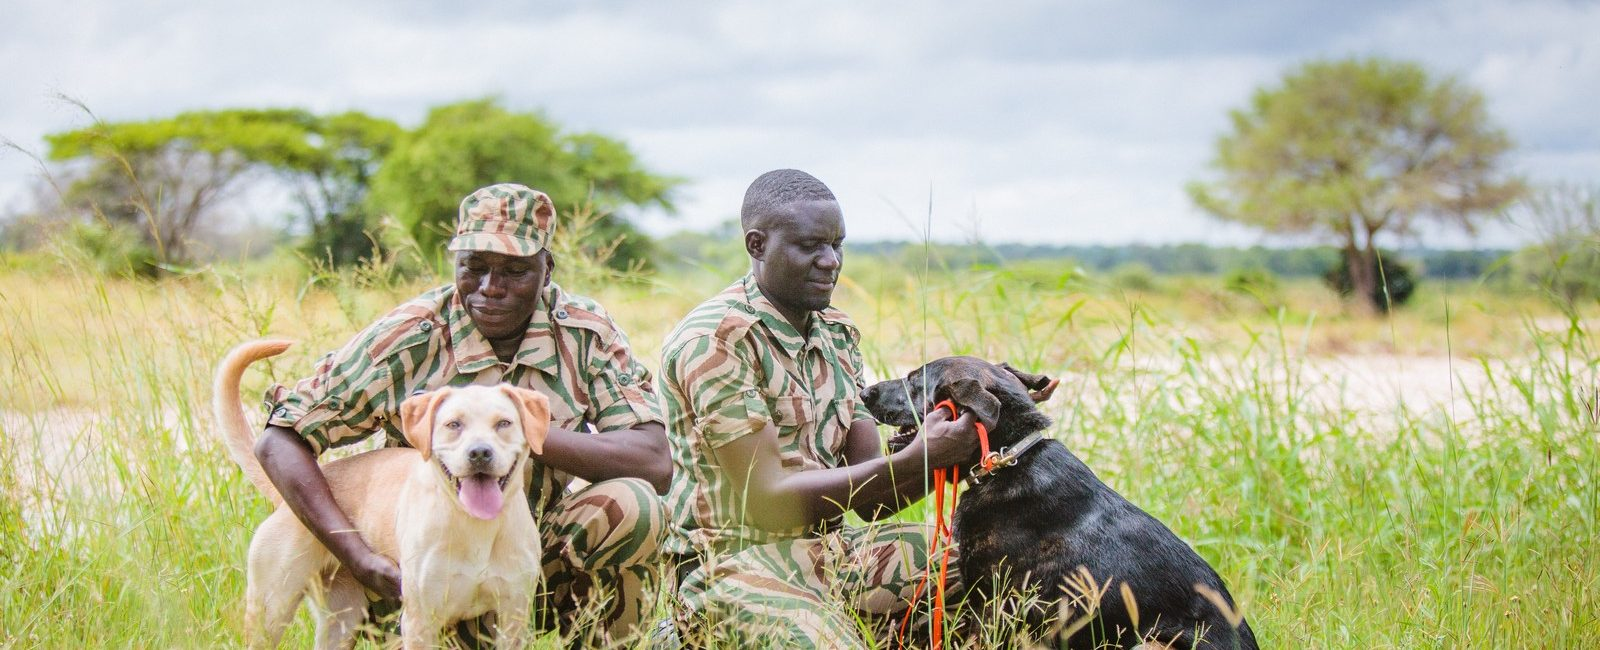 Image of rangers and their tracking and detection dogs who are an invaluable addition to field programmes' anti-poaching patrols and technologies.